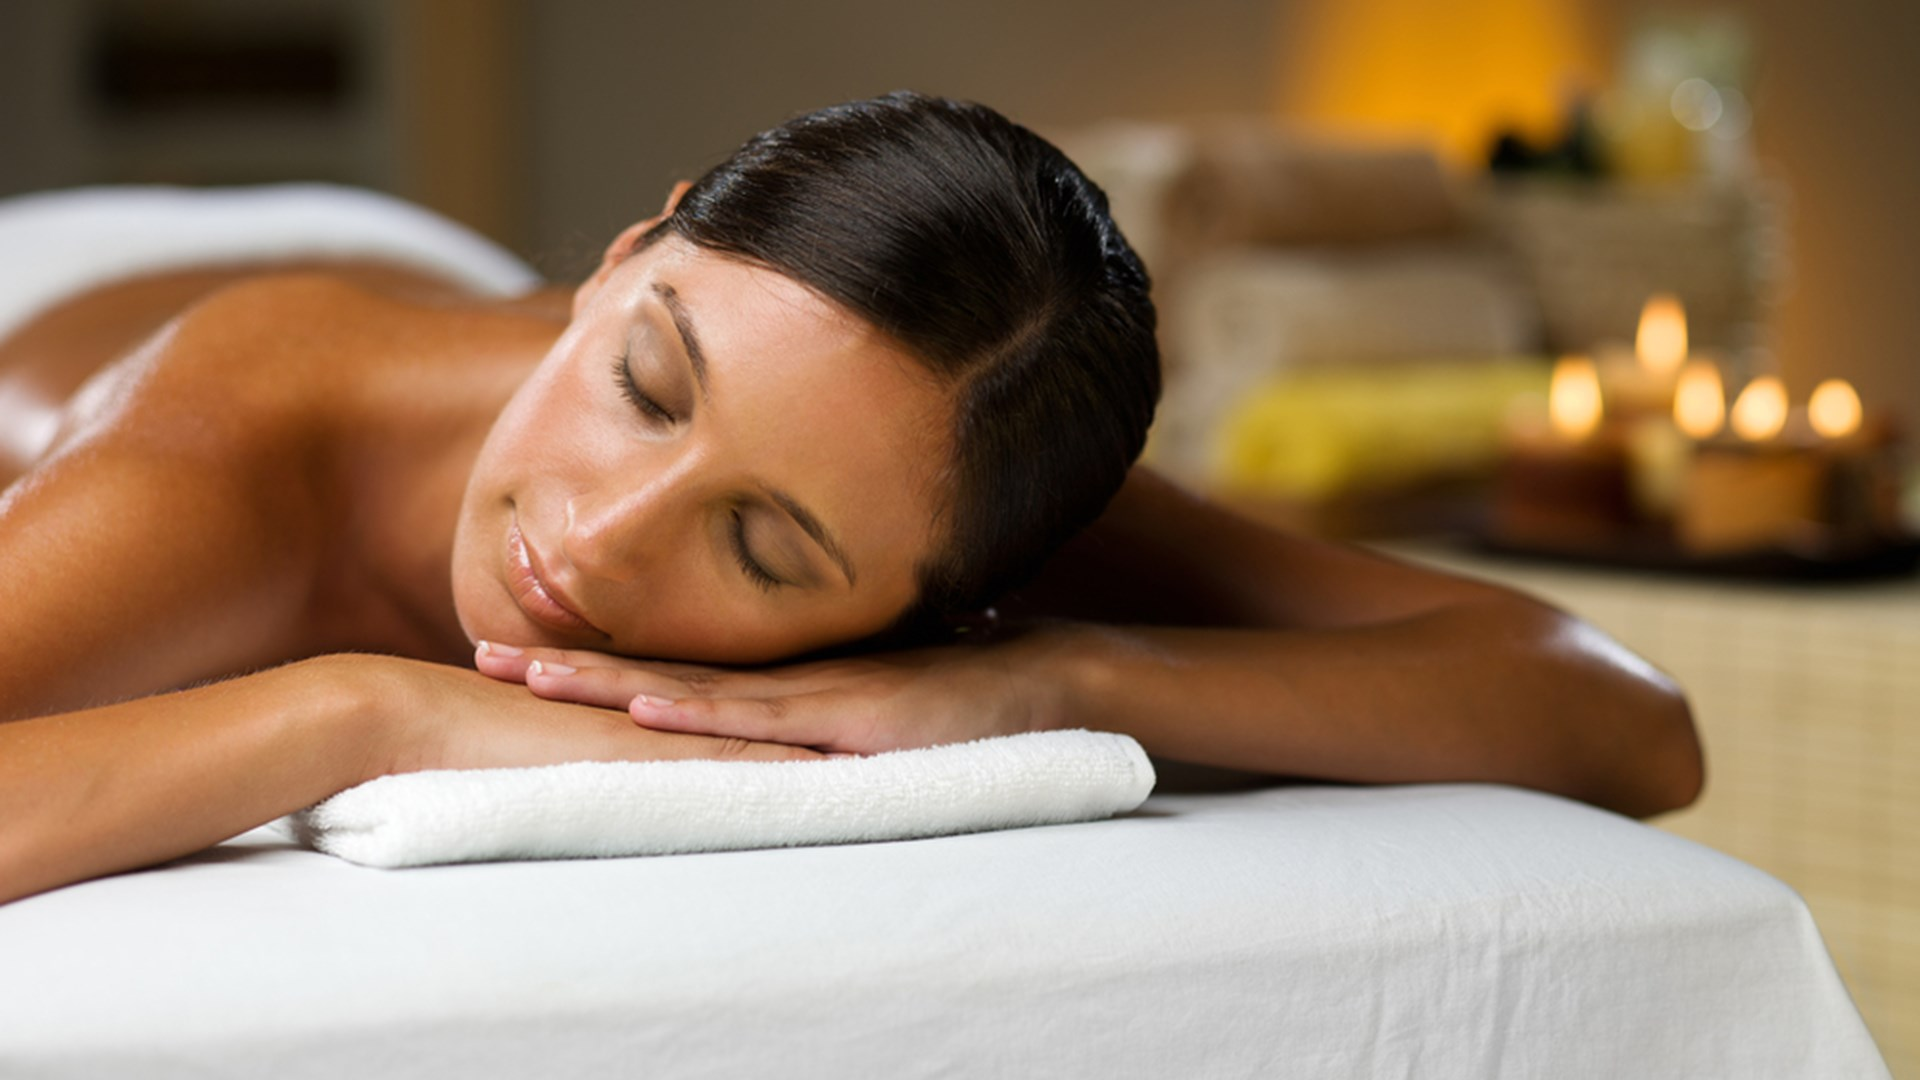 A woman lying on her front on a massage table awaiting her spa treatments